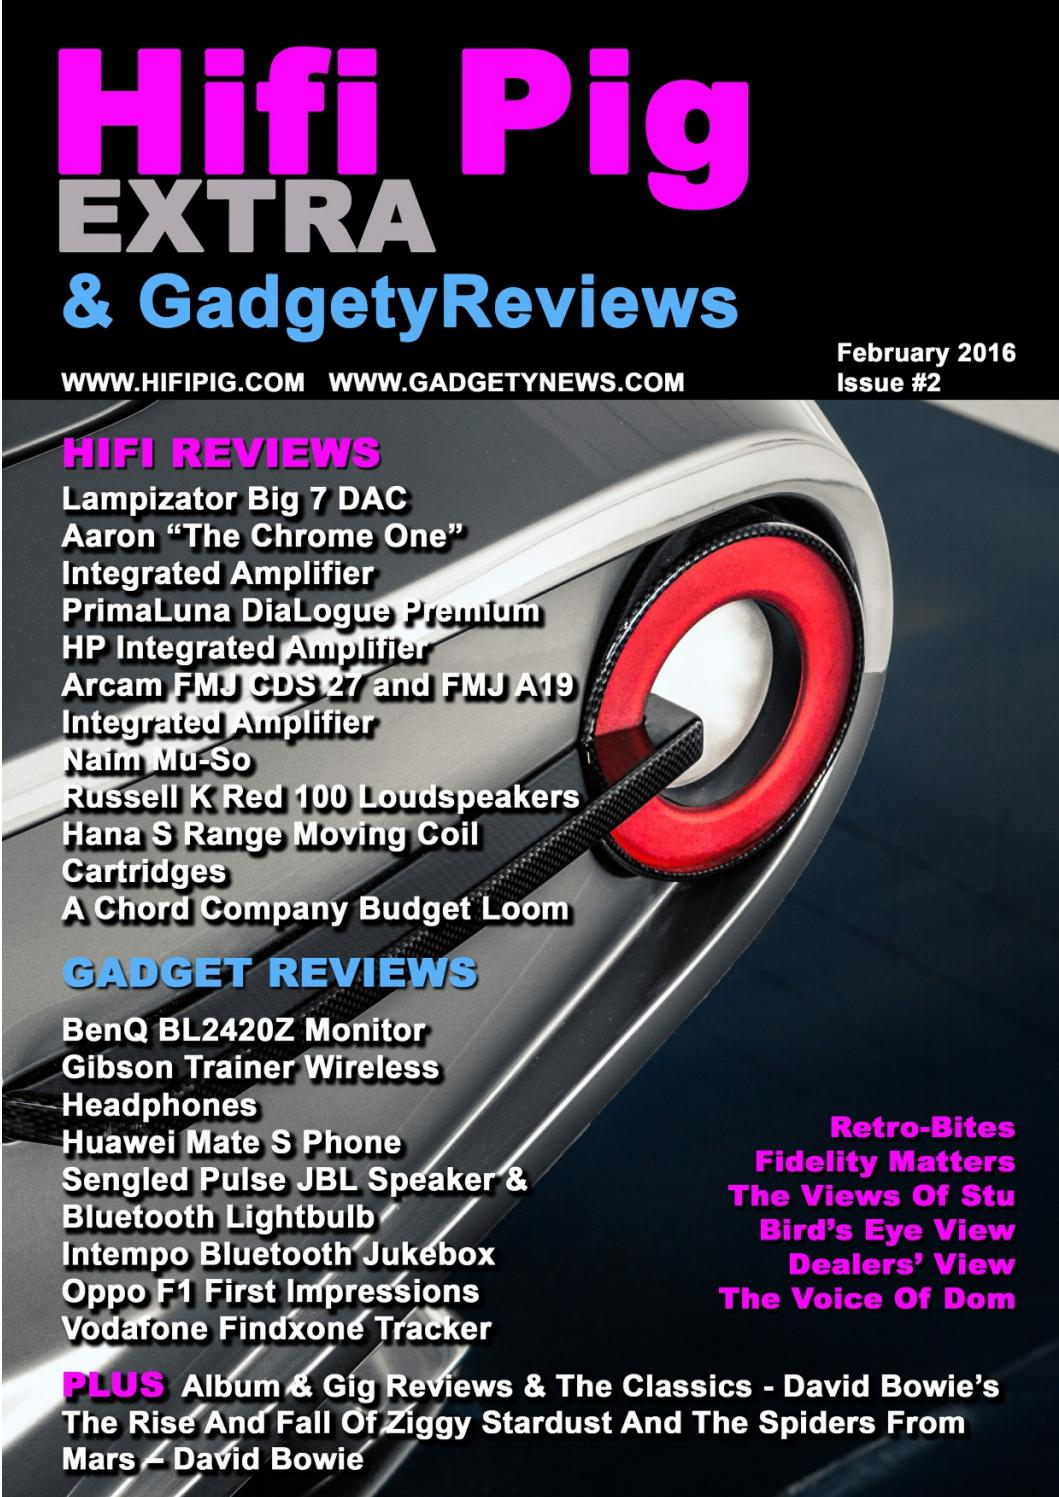 Hif pig and gadgetynews feb 2016 by hifi pig issuu hexwebz Image collections